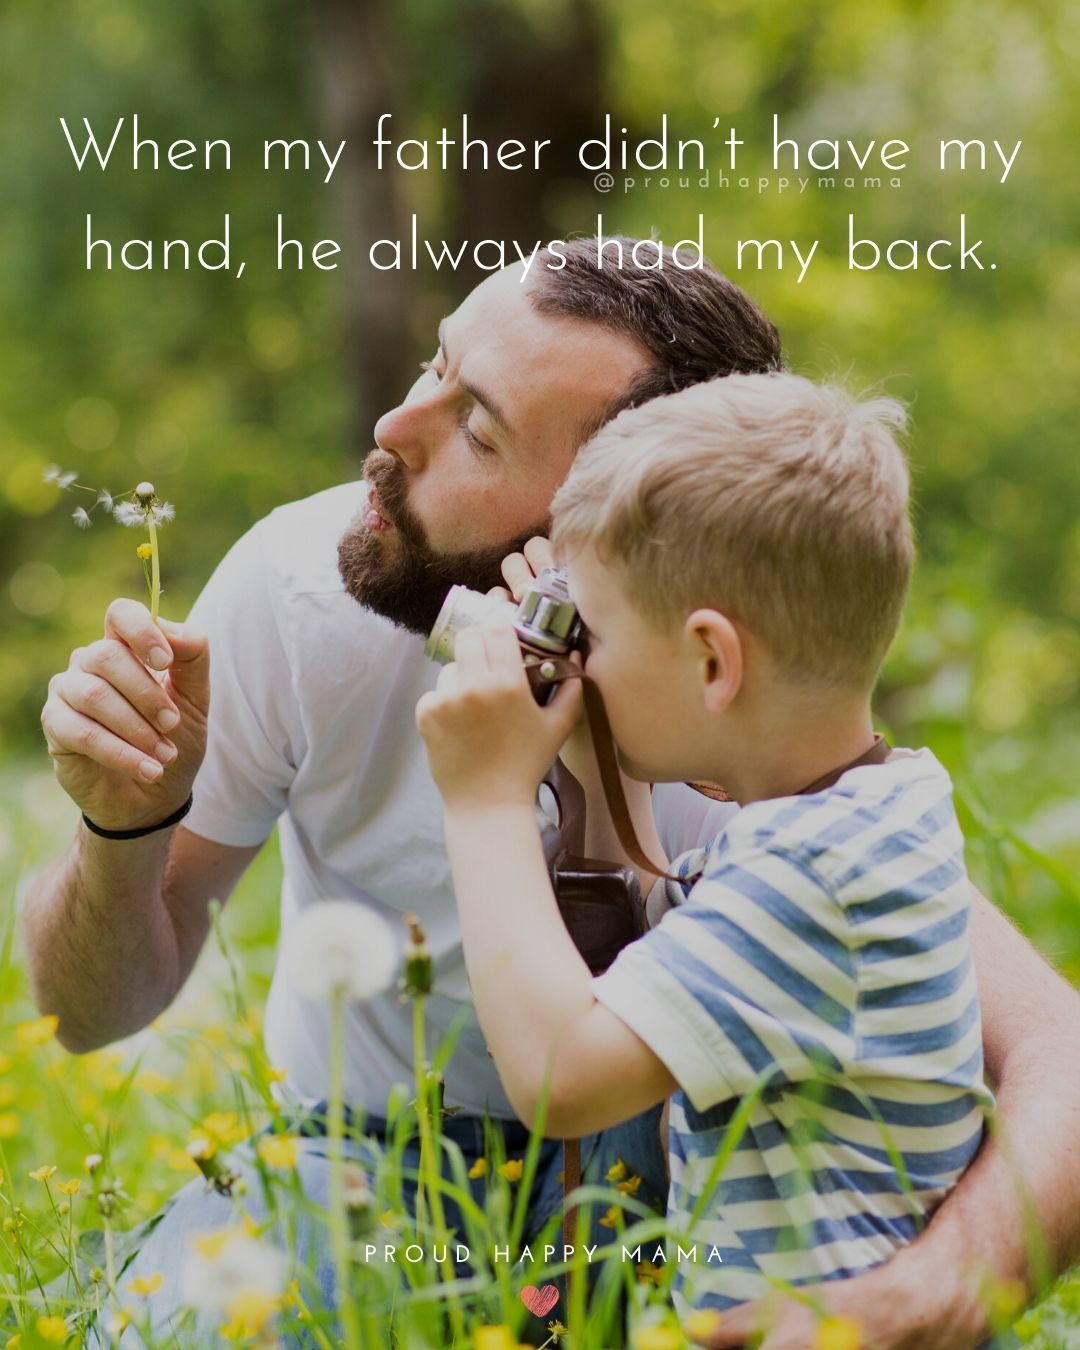 30 Best Father And Son Quotes And Sayings With Images Father Son Quotes Love My Kids Quotes My Children Quotes